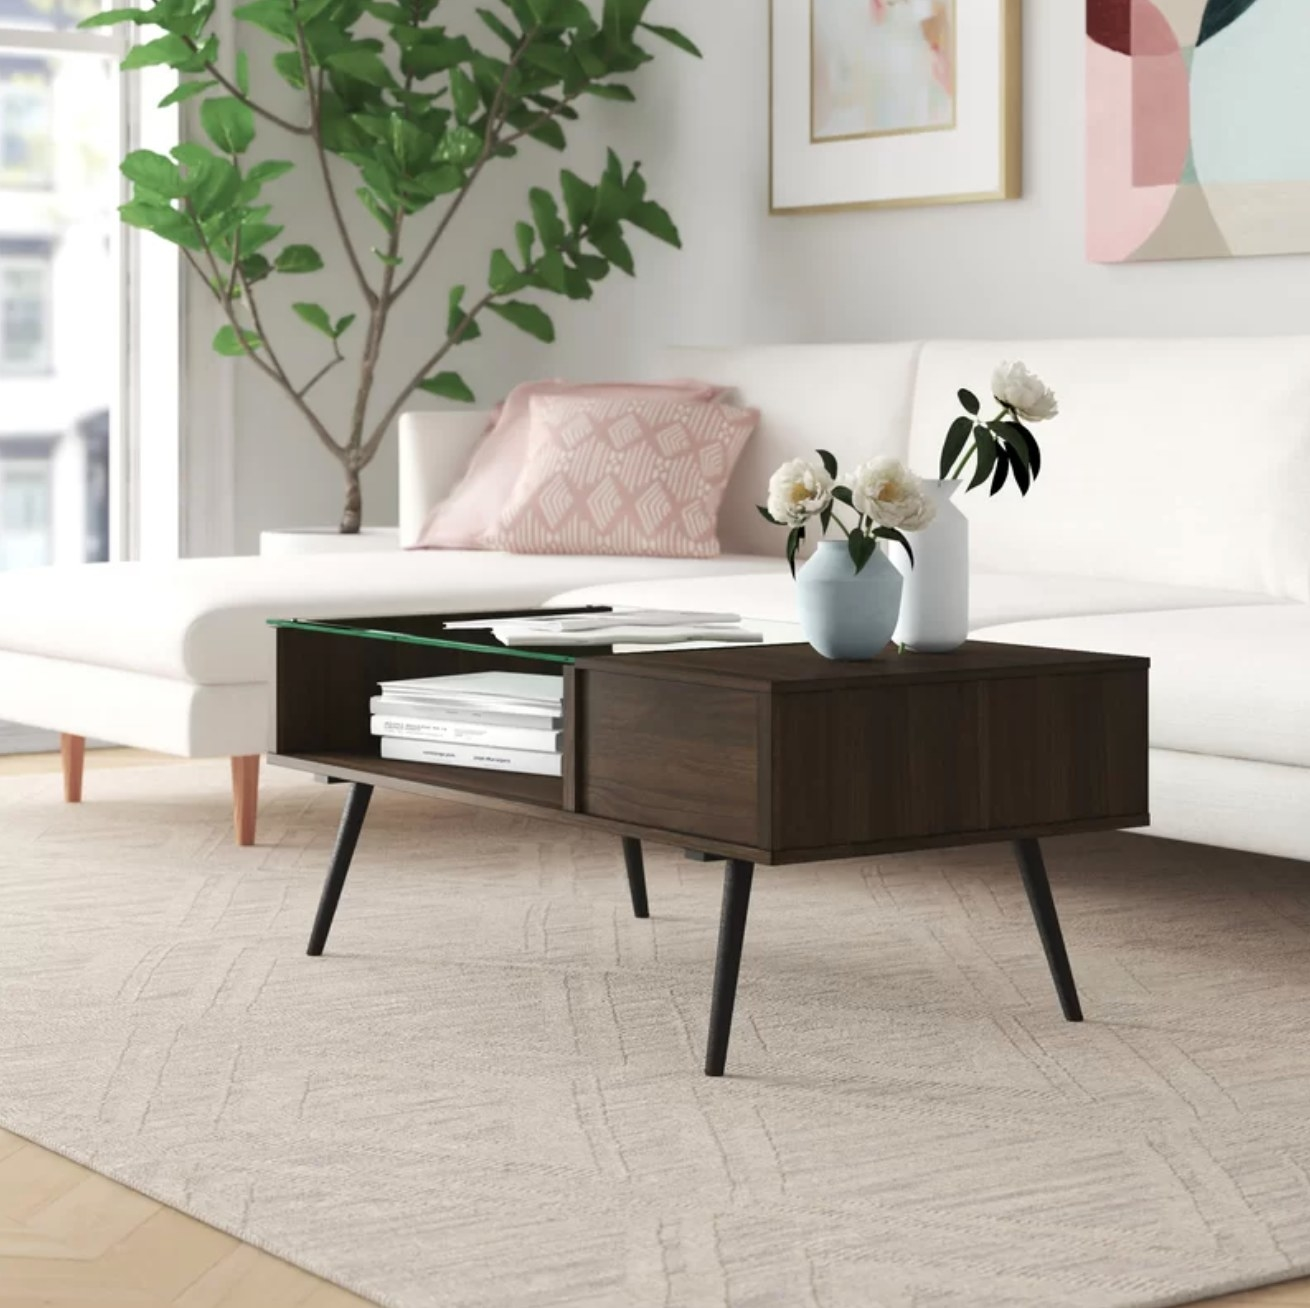 The coffee table in dark walnut holding books and a vase of flowers